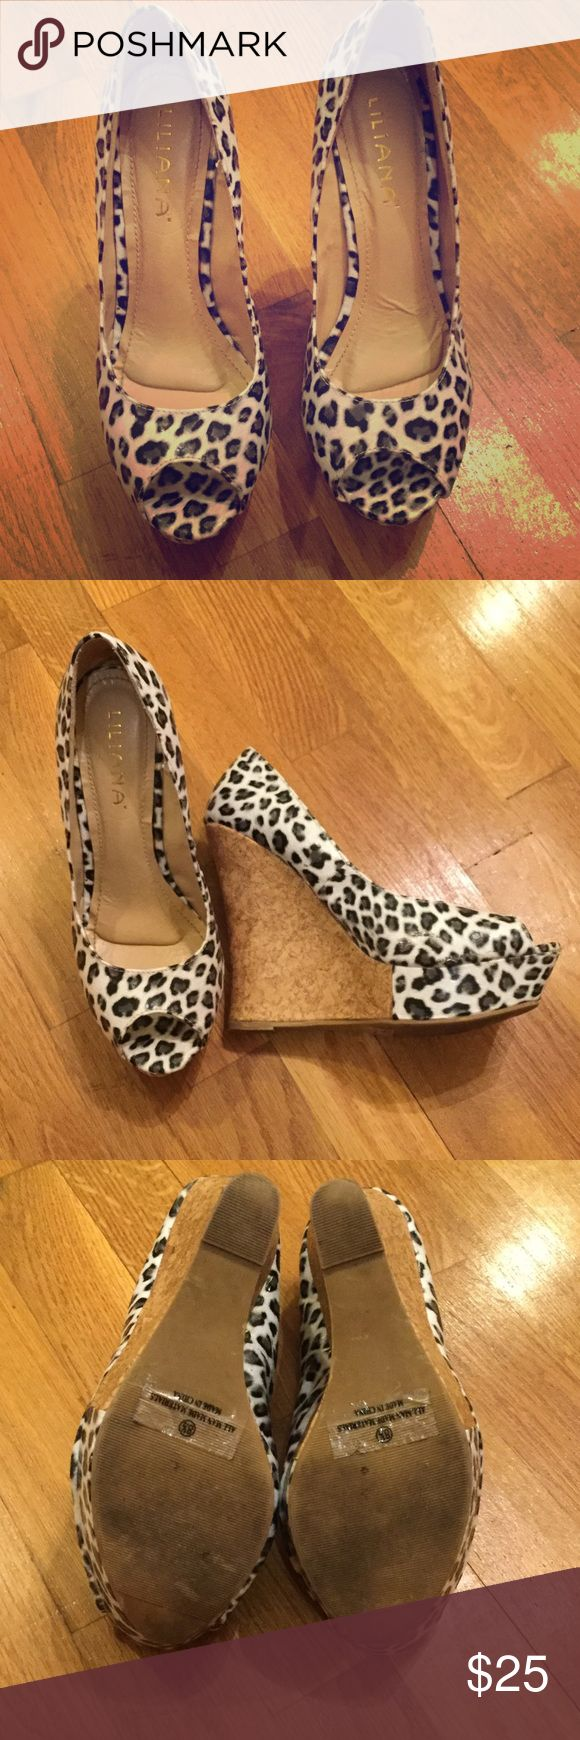 white leopard print wedges Lightly worn Lilliana white leopard print wedges with cork bottoms. Will negotiate prices Liliana Shoes Wedges